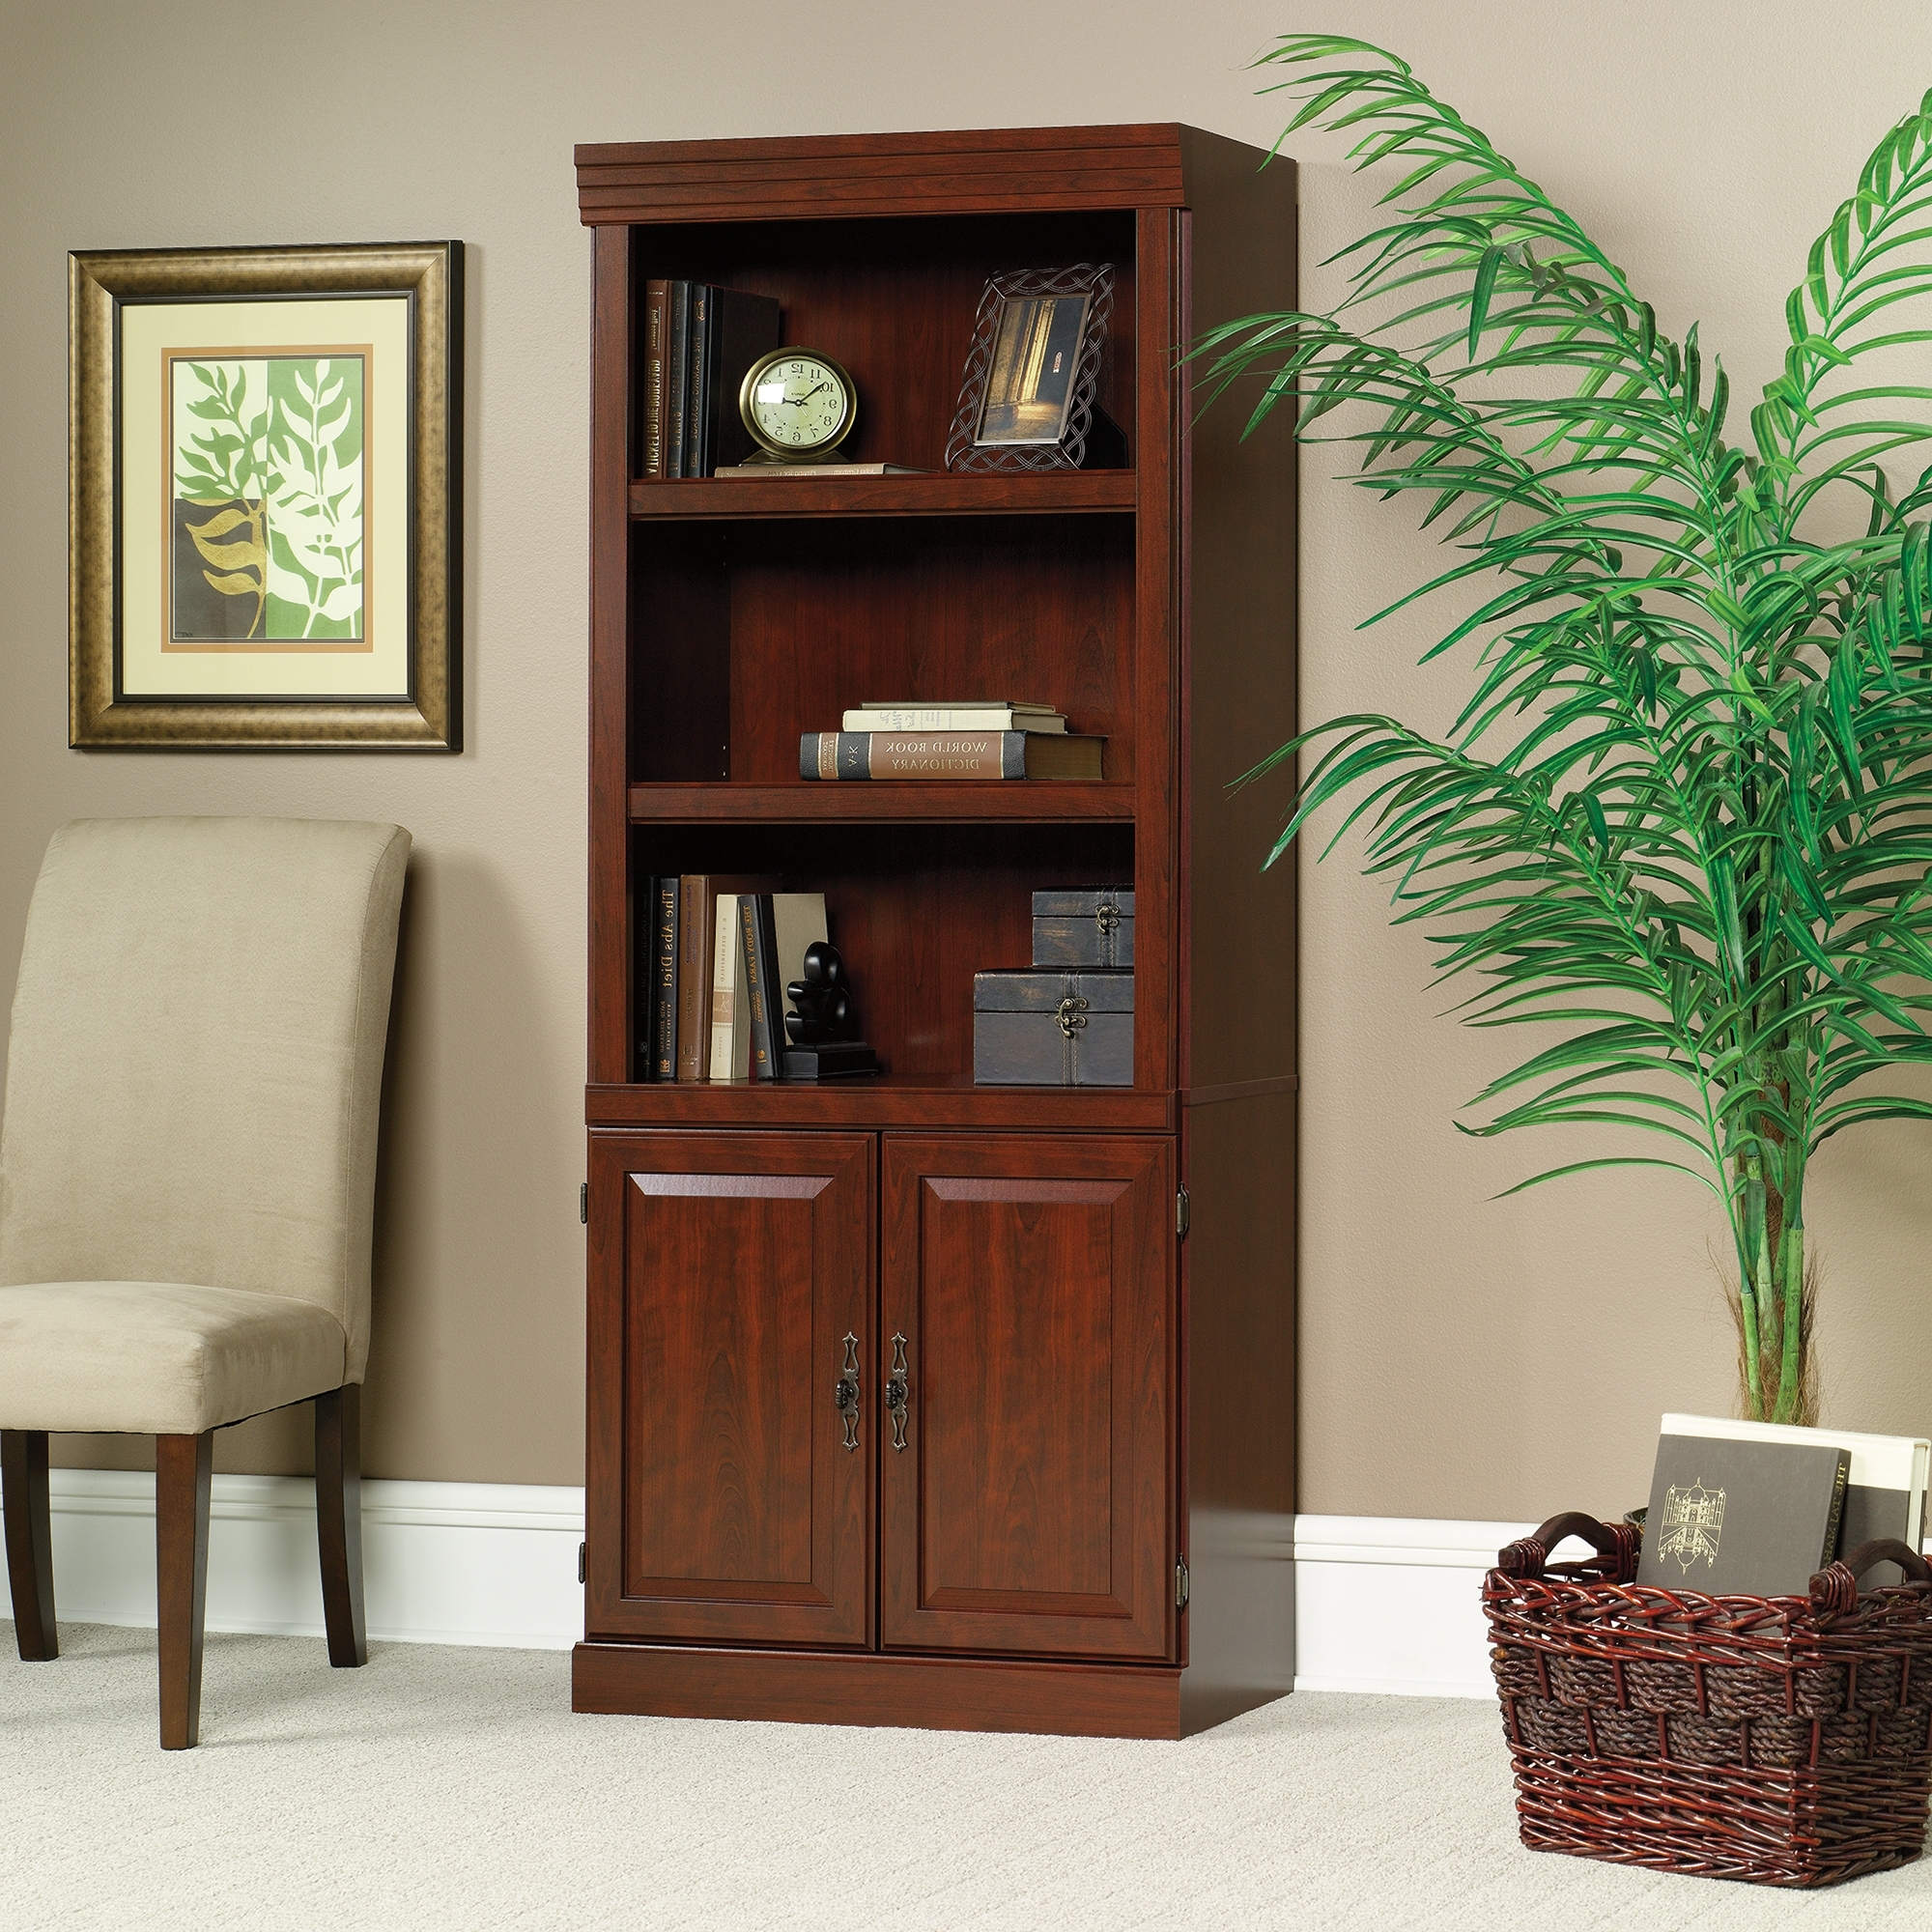 Most Popular Sauder Bookcases Within Heritage Hill (View 5 of 15)